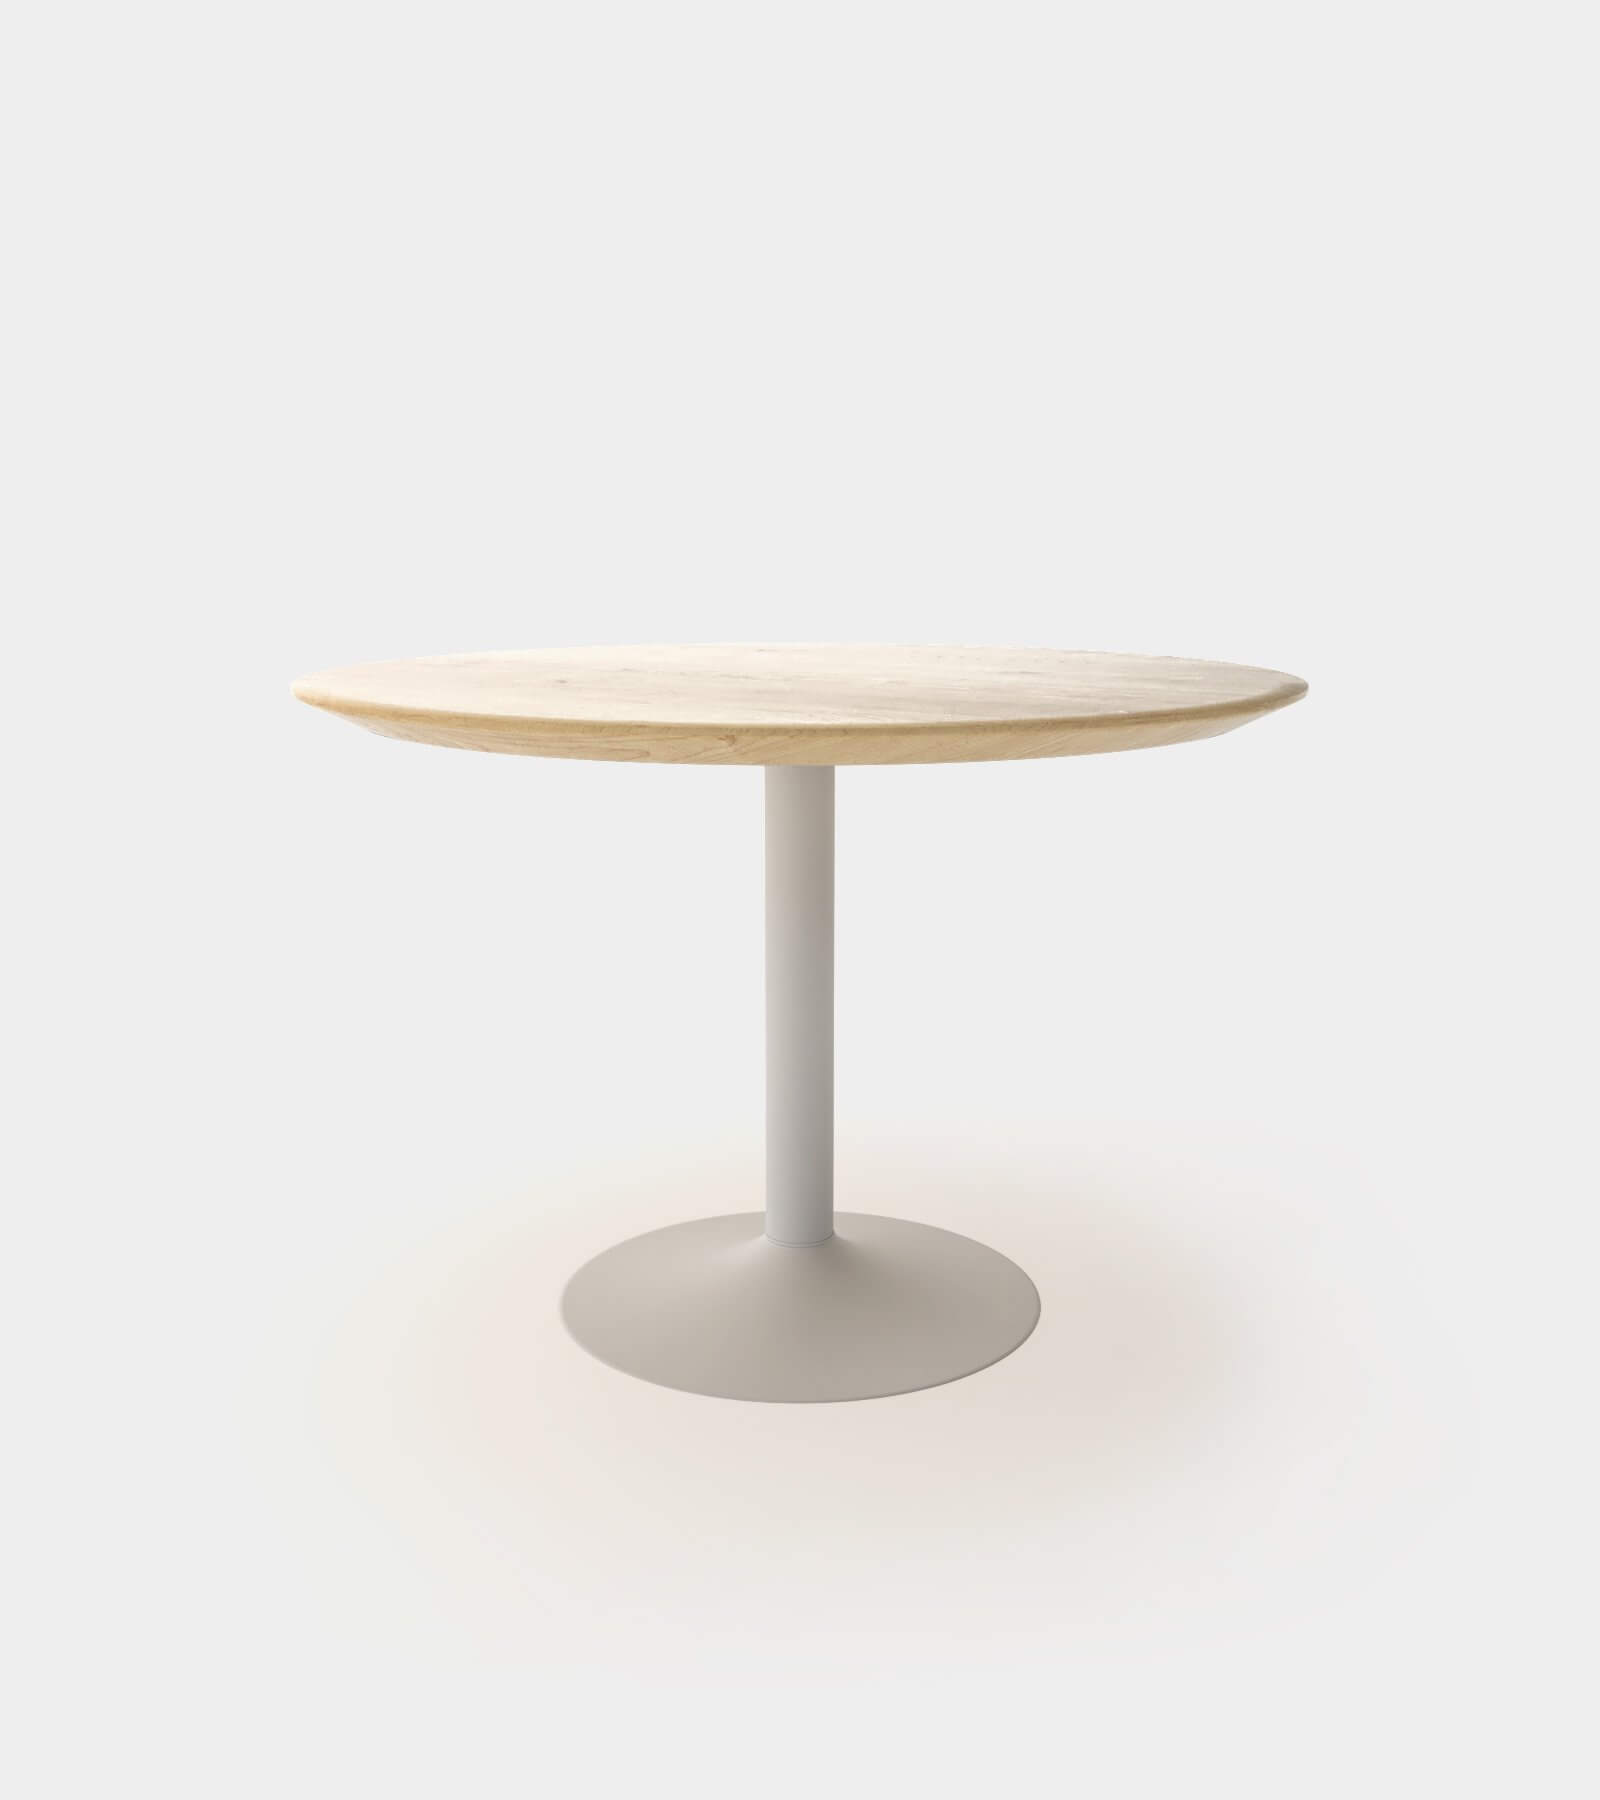 Dining table round for 4 people - 3D Model